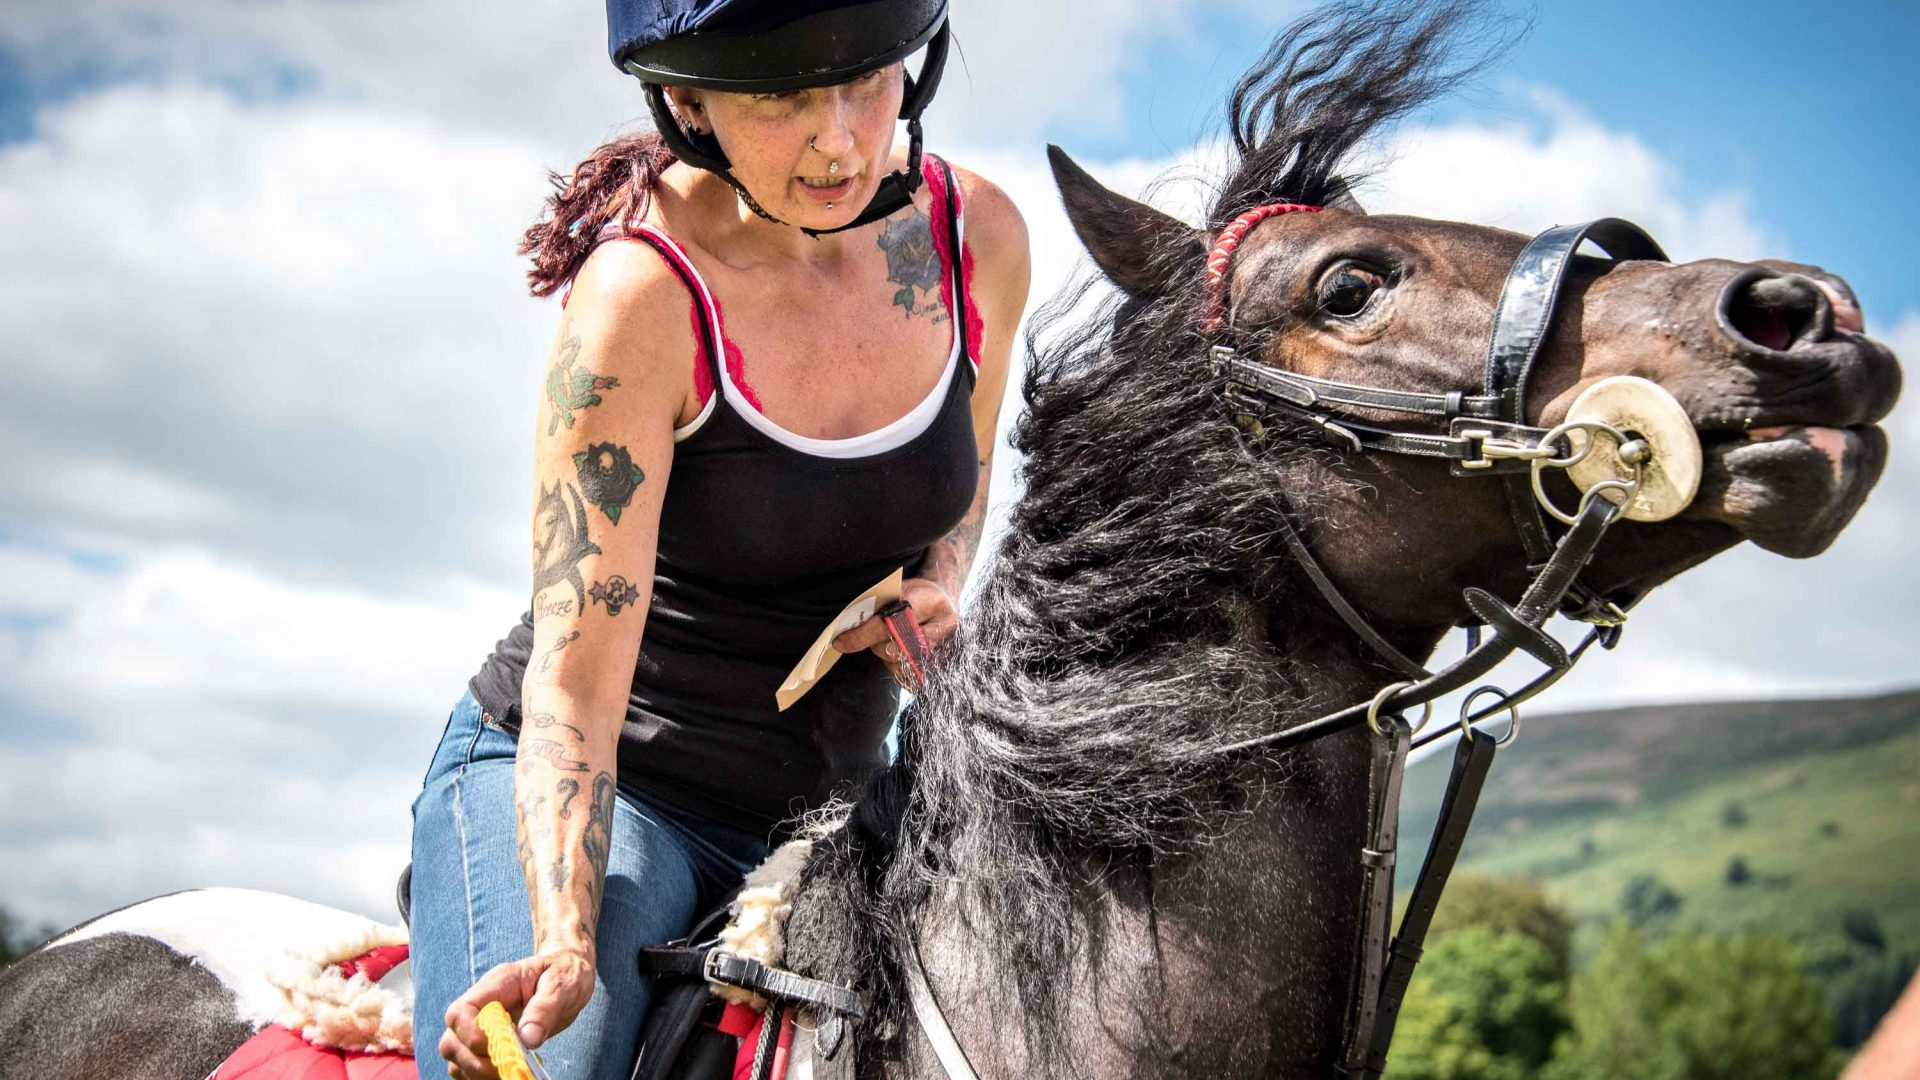 An attendee at the show tries to wrangle the wile horse she is riding.